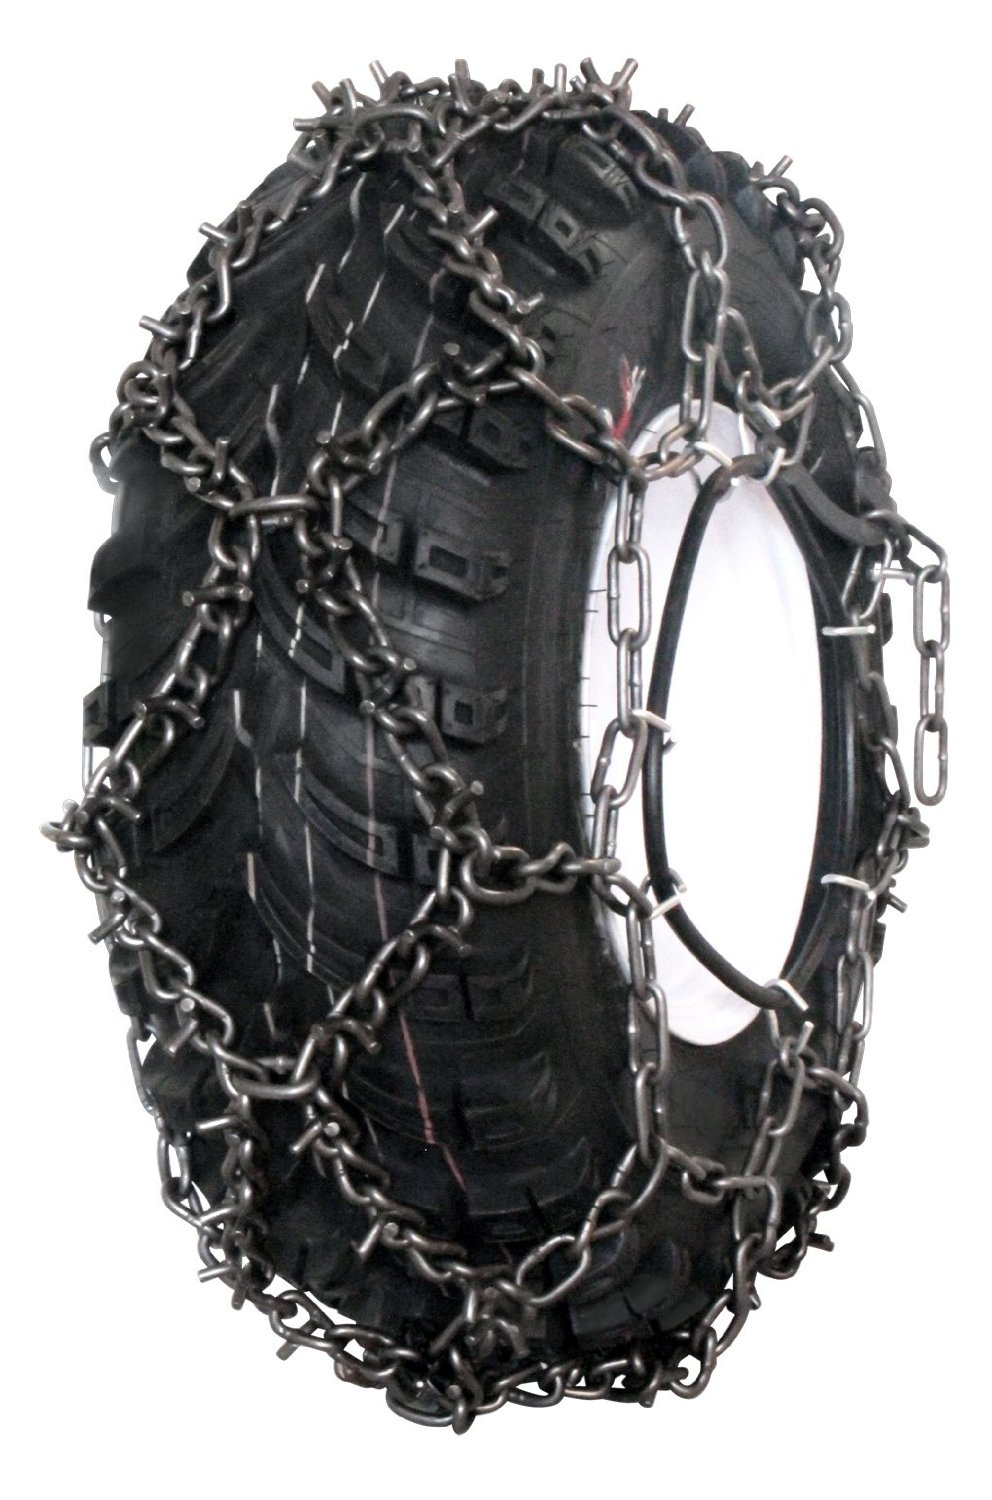 Grizzlar GTU-625 ATV 4 Link Ladder Alloy Tire Chains with Tensioners 24x9-11 24x10-11 24x10-12 25x10.00-12